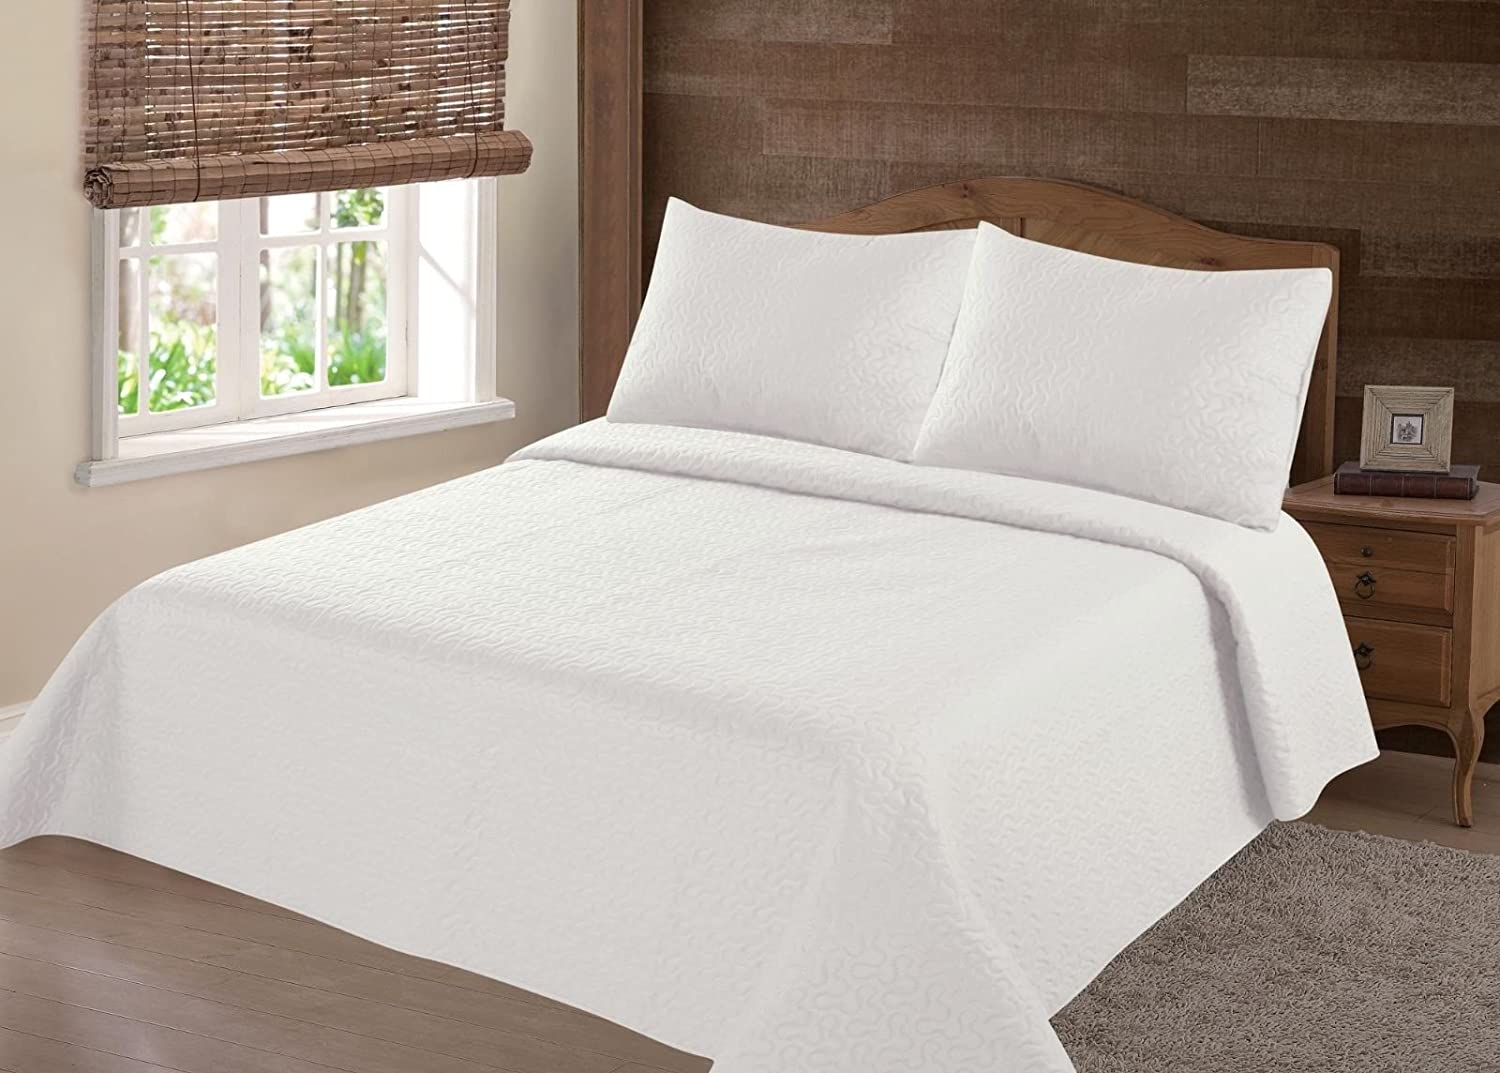 GorgeousHomeLinen (NENA) Ivory off White Solid Hypoallergenic Quilt Bedspread Bed Bedding Coverlets Cover Set with Pillow Cases Size inc: Twin (2pc) Full Queen King (3pc) (Full)